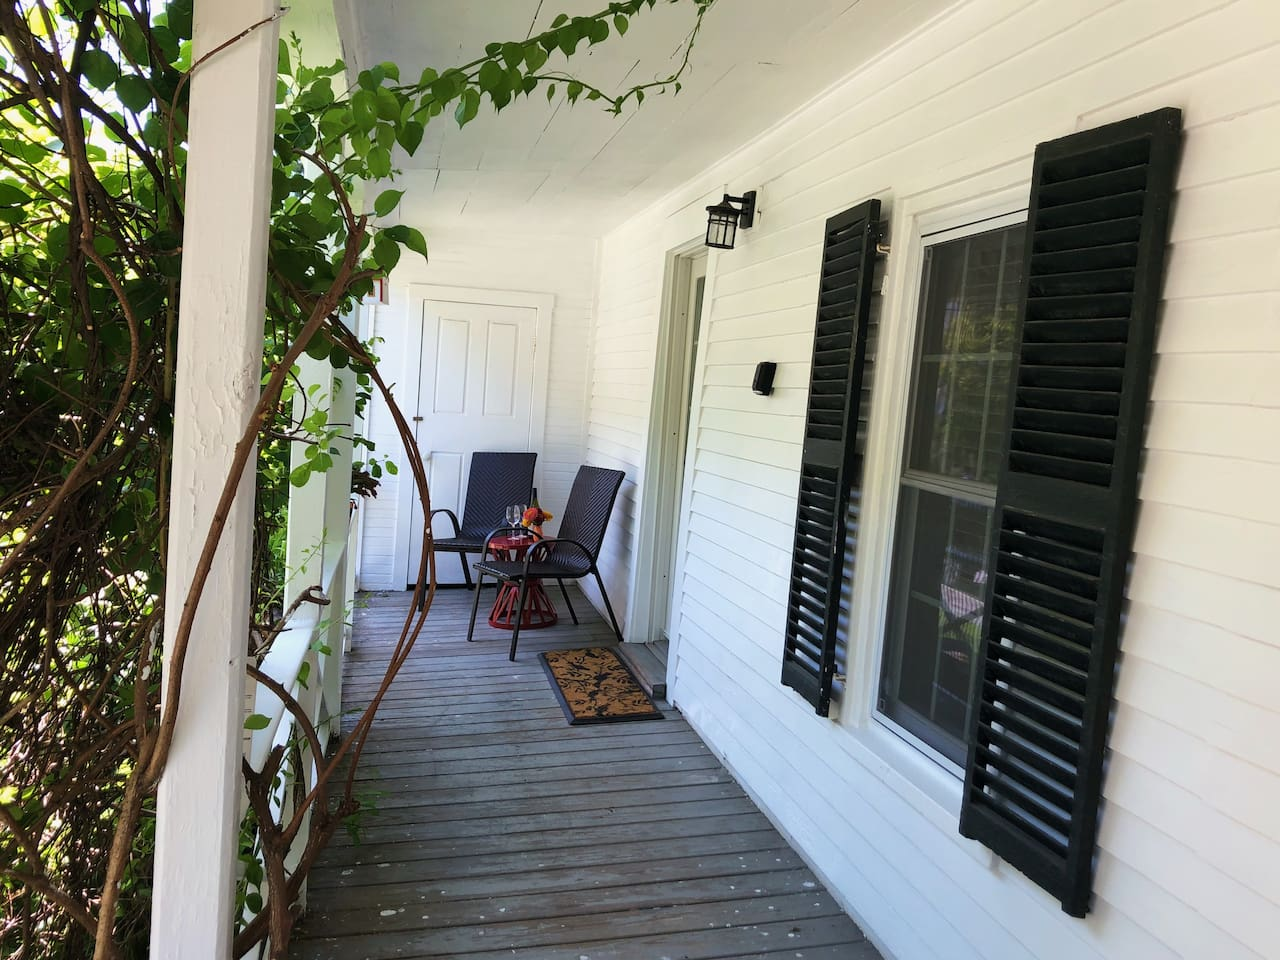 Covered porch makes the apartment feel tucked away and adds extra privacy.